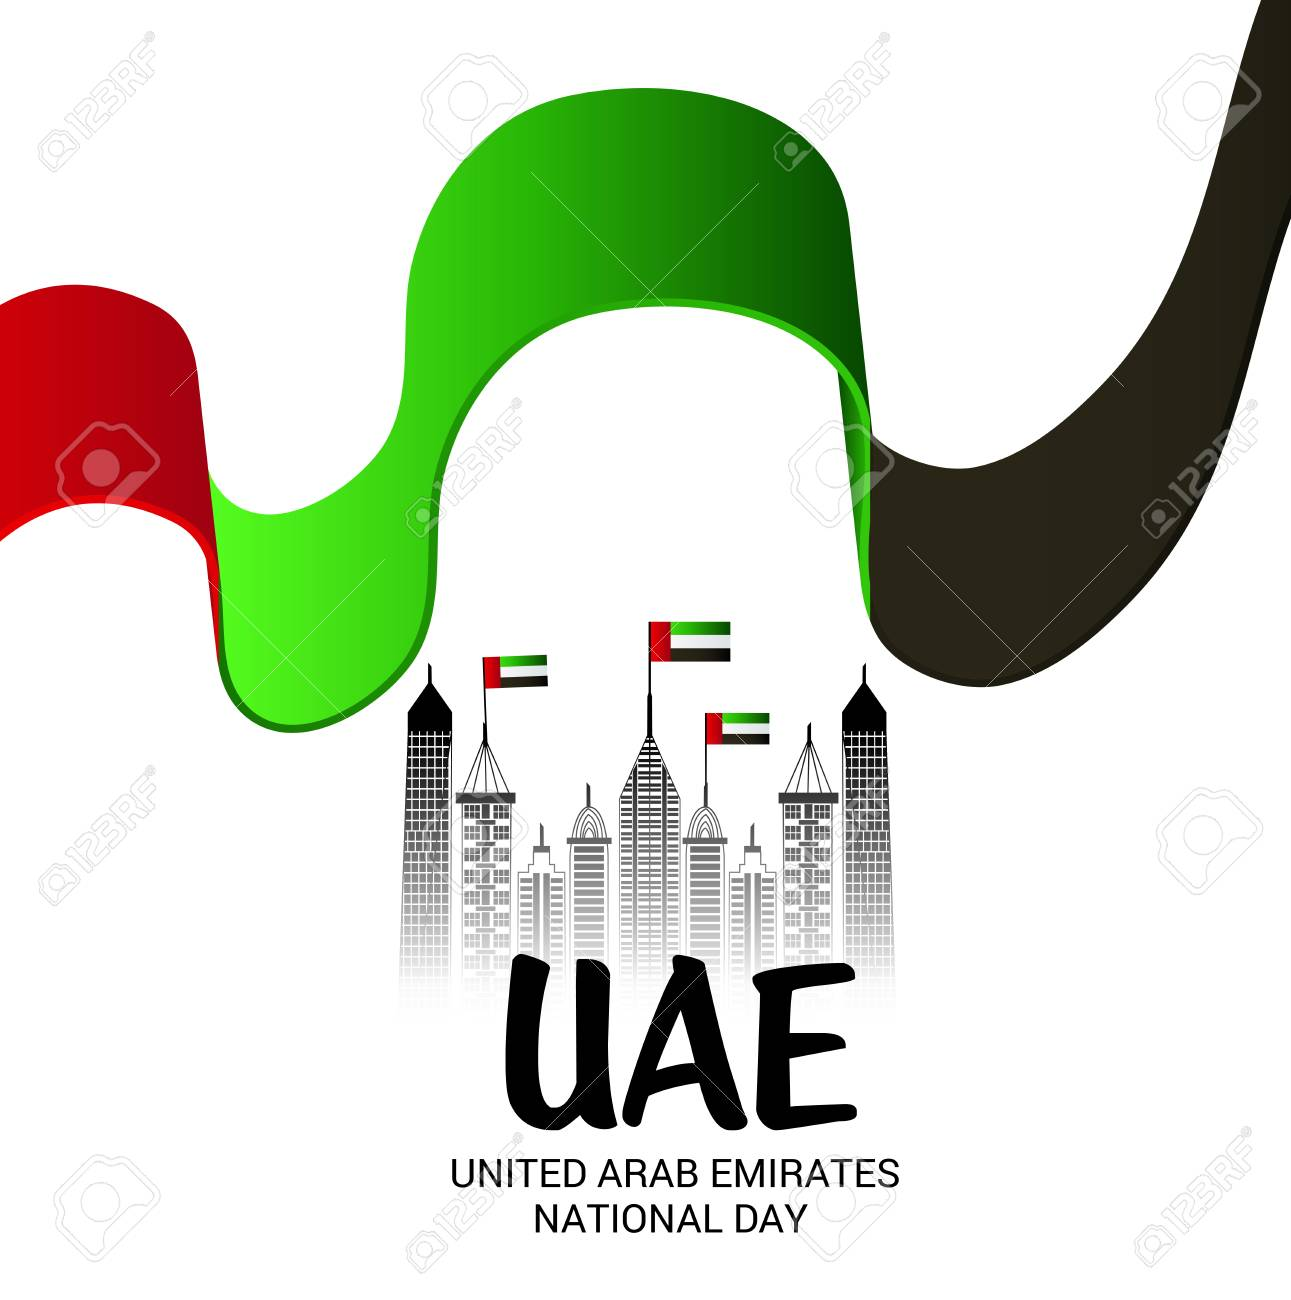 d45dcf6dc7c UAE National Day. Stock Vector - 112468105